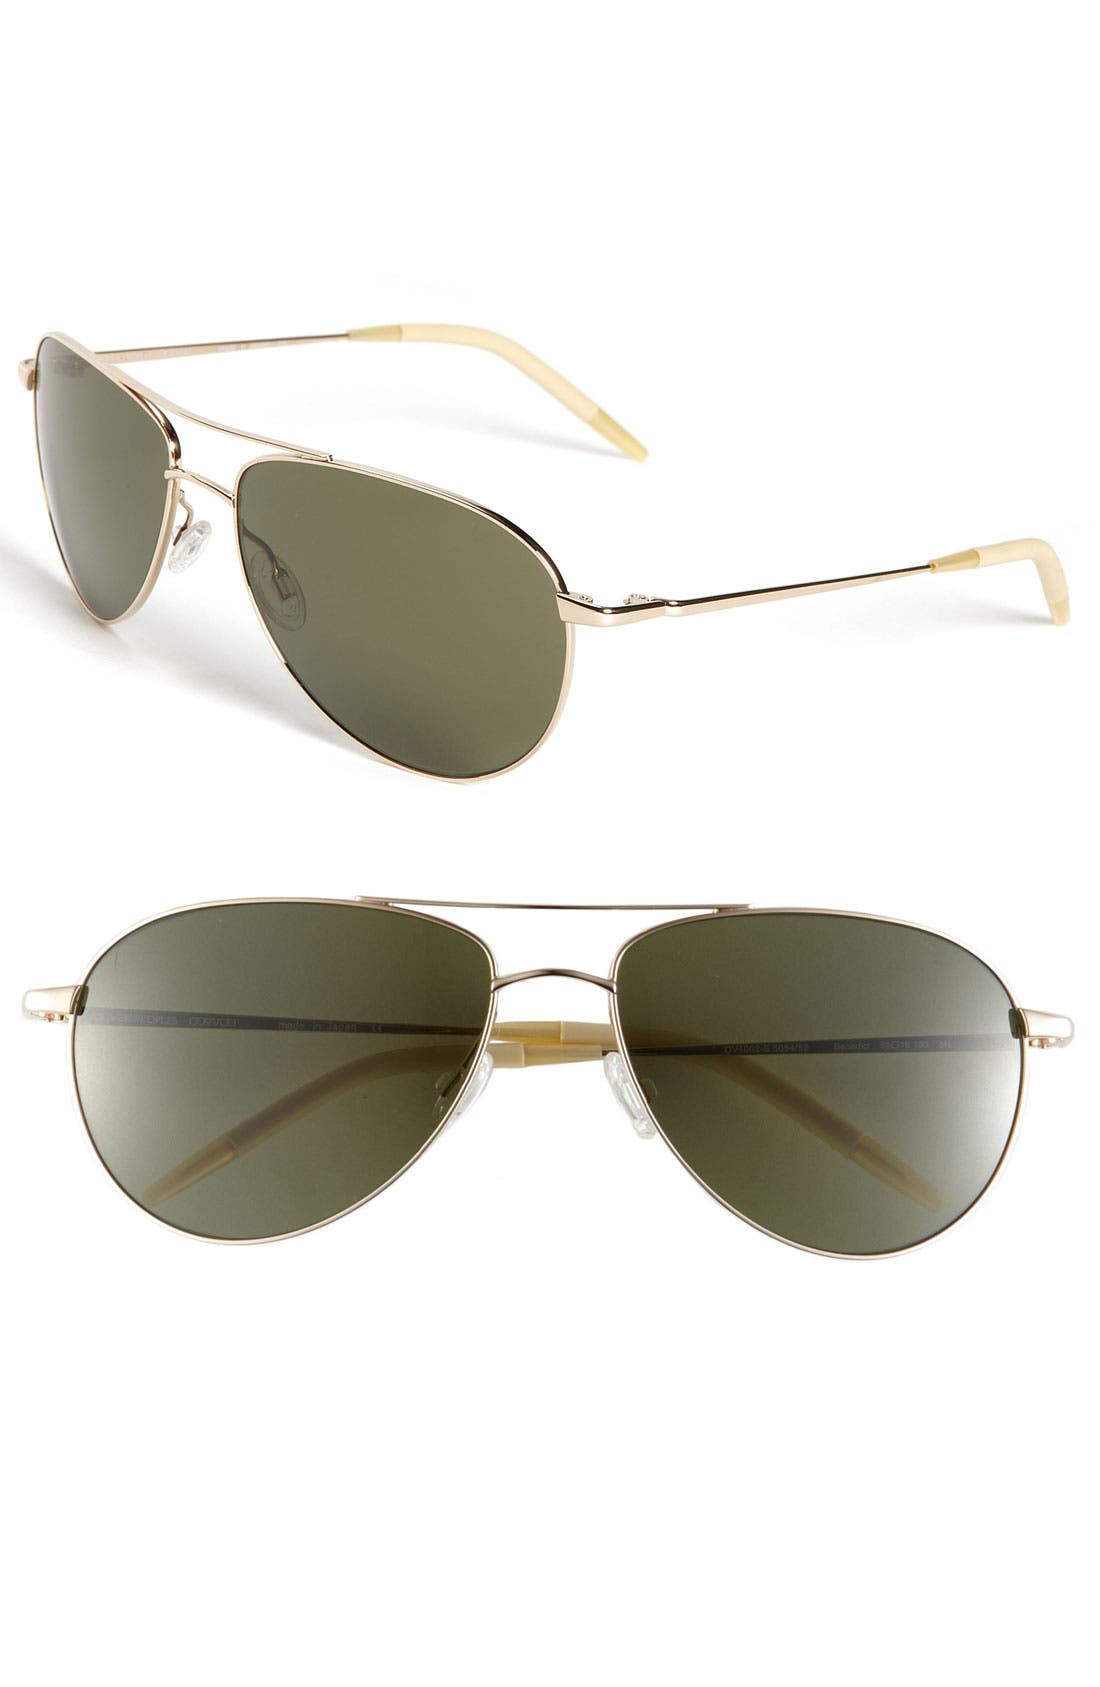 Main Image - Oliver Peoples 'Benedict' 59mm Aviator Sunglasses (Regular Retail Price: $350.00)